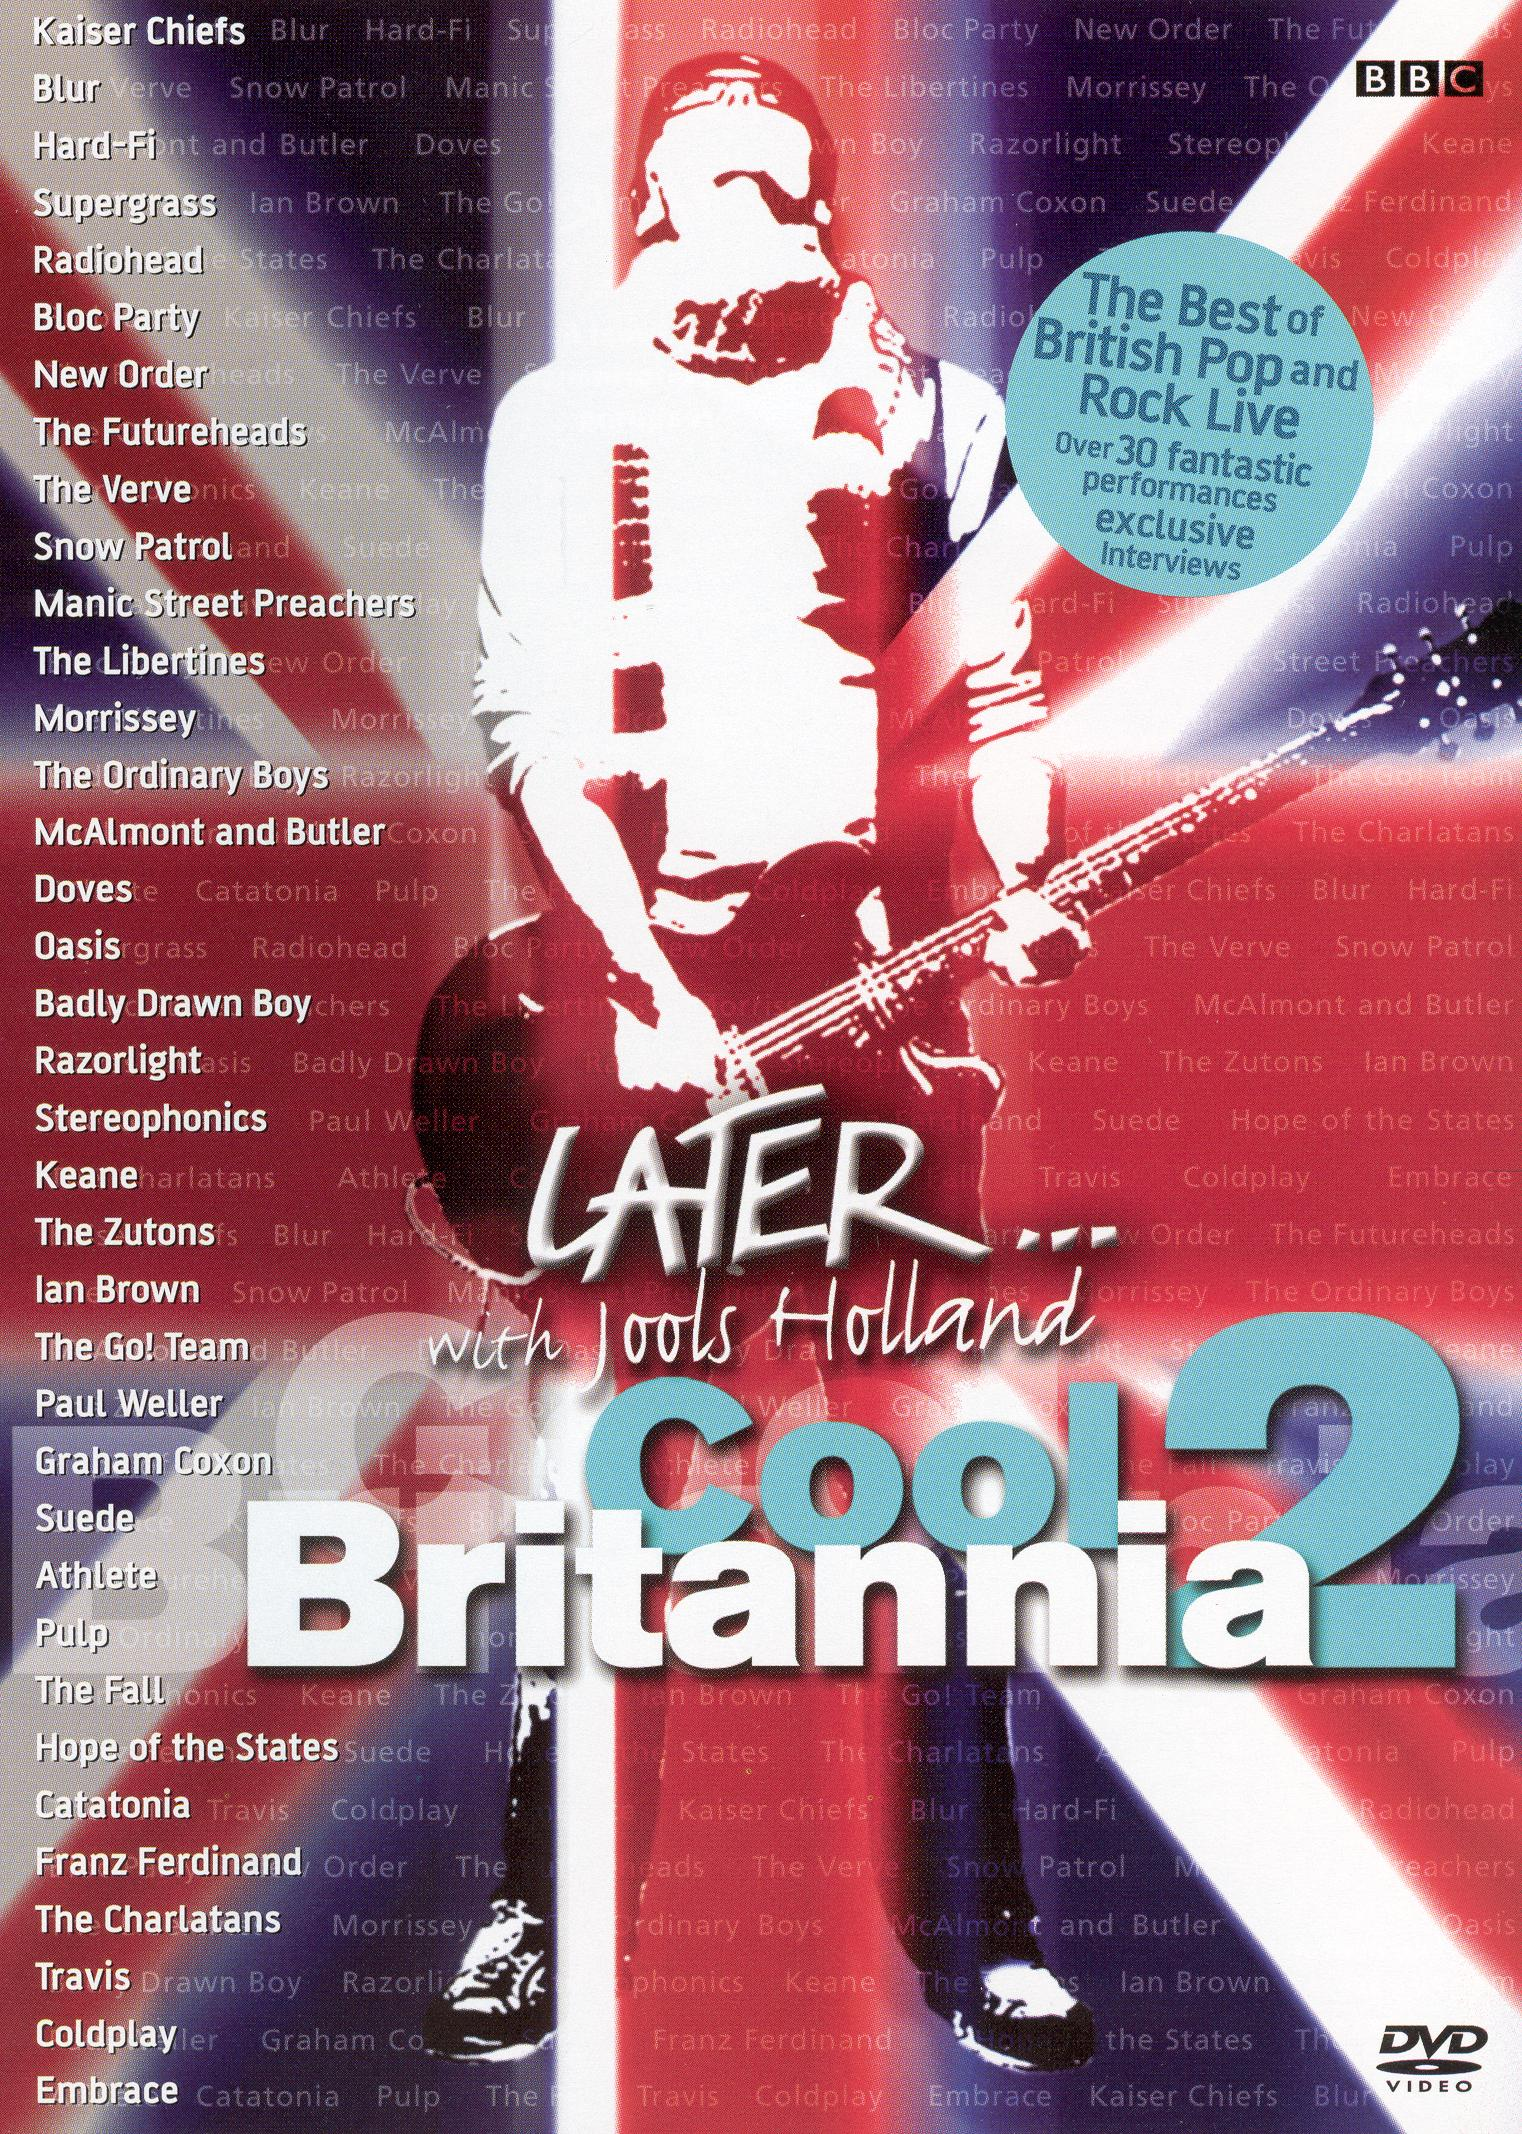 Later... With Jools Holland: Later Cool Britannia 2